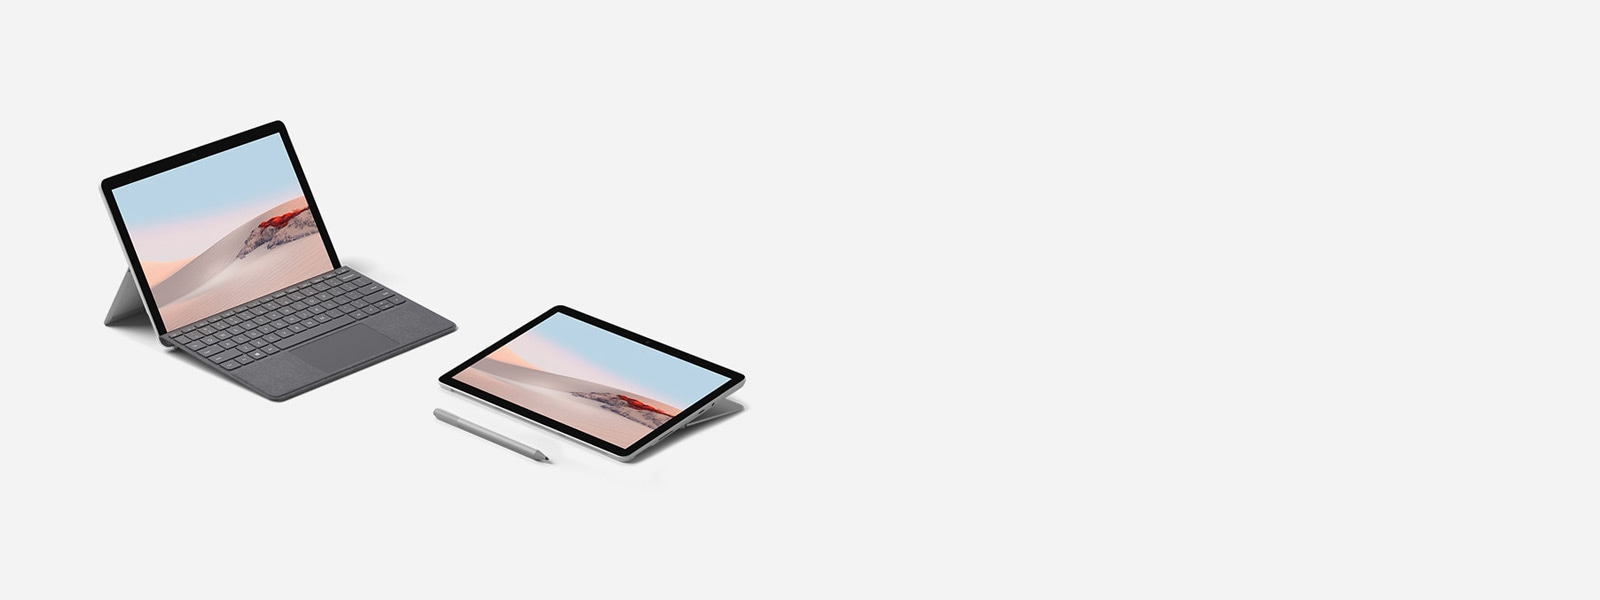 Surface Go 2 im Laptop-Modus mit Surface Go Signature Type Cover in Platin und im Studio-Modus mit Surface Pen